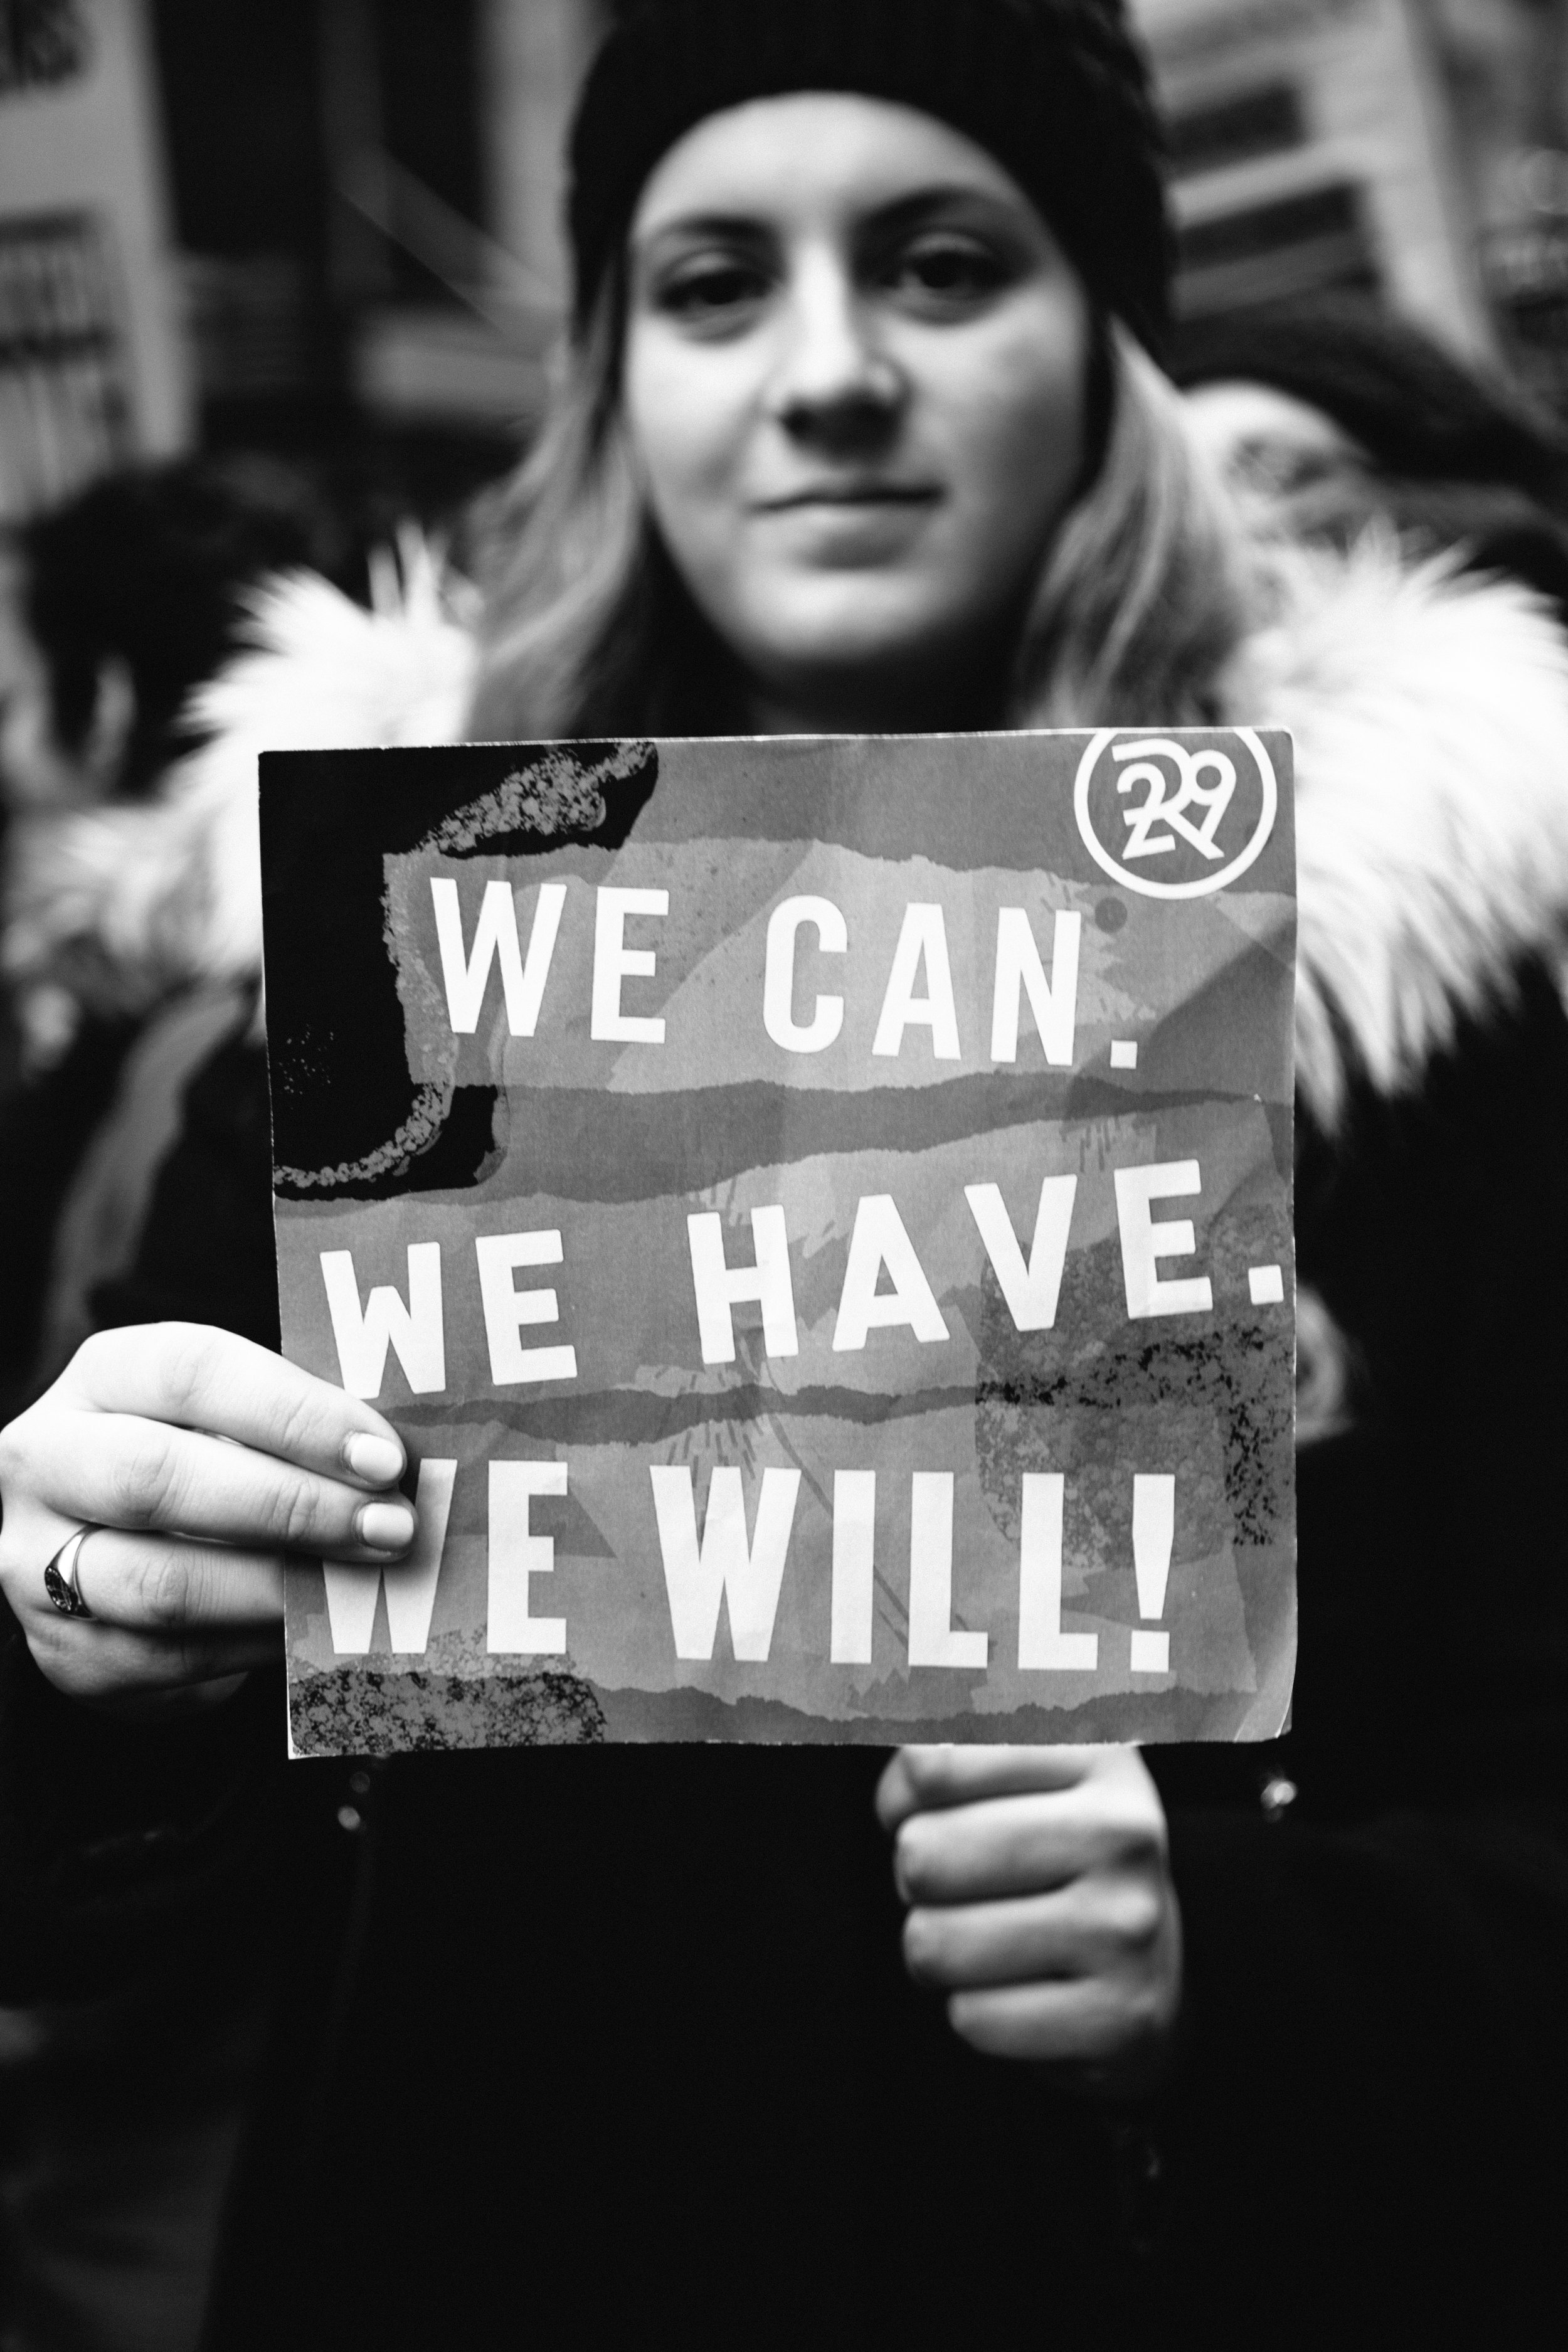 women's march on washington nyc protest signs-66.jpg